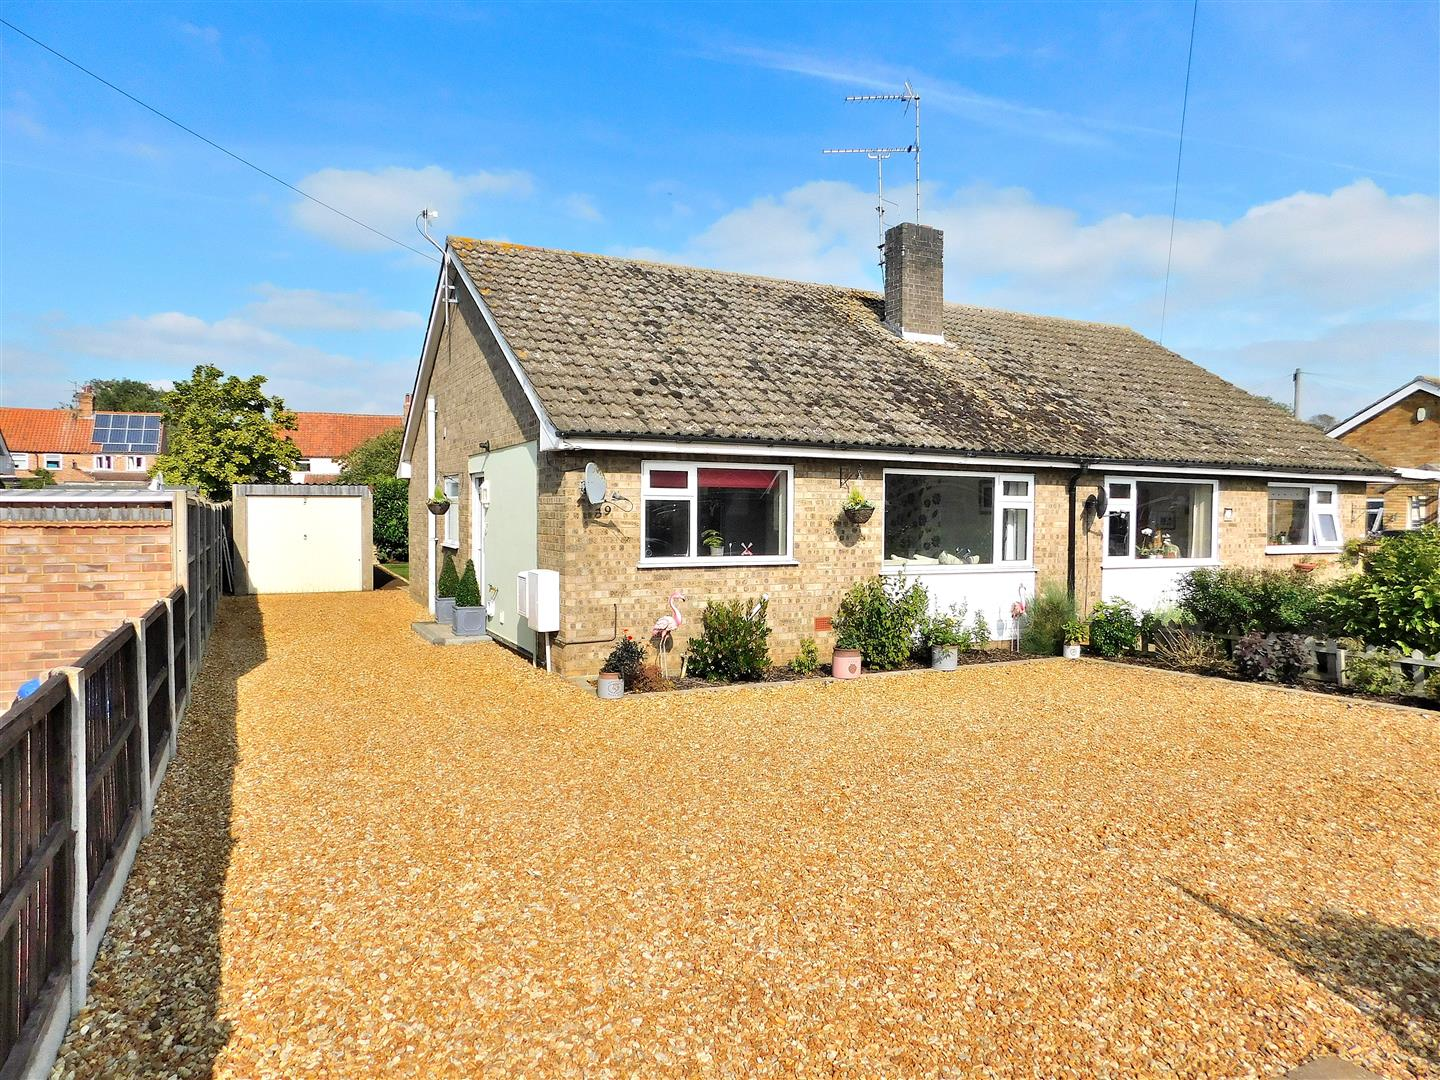 2 bed semi-detached bungalow for sale in King's Lynn, PE31 6JQ  - Property Image 1